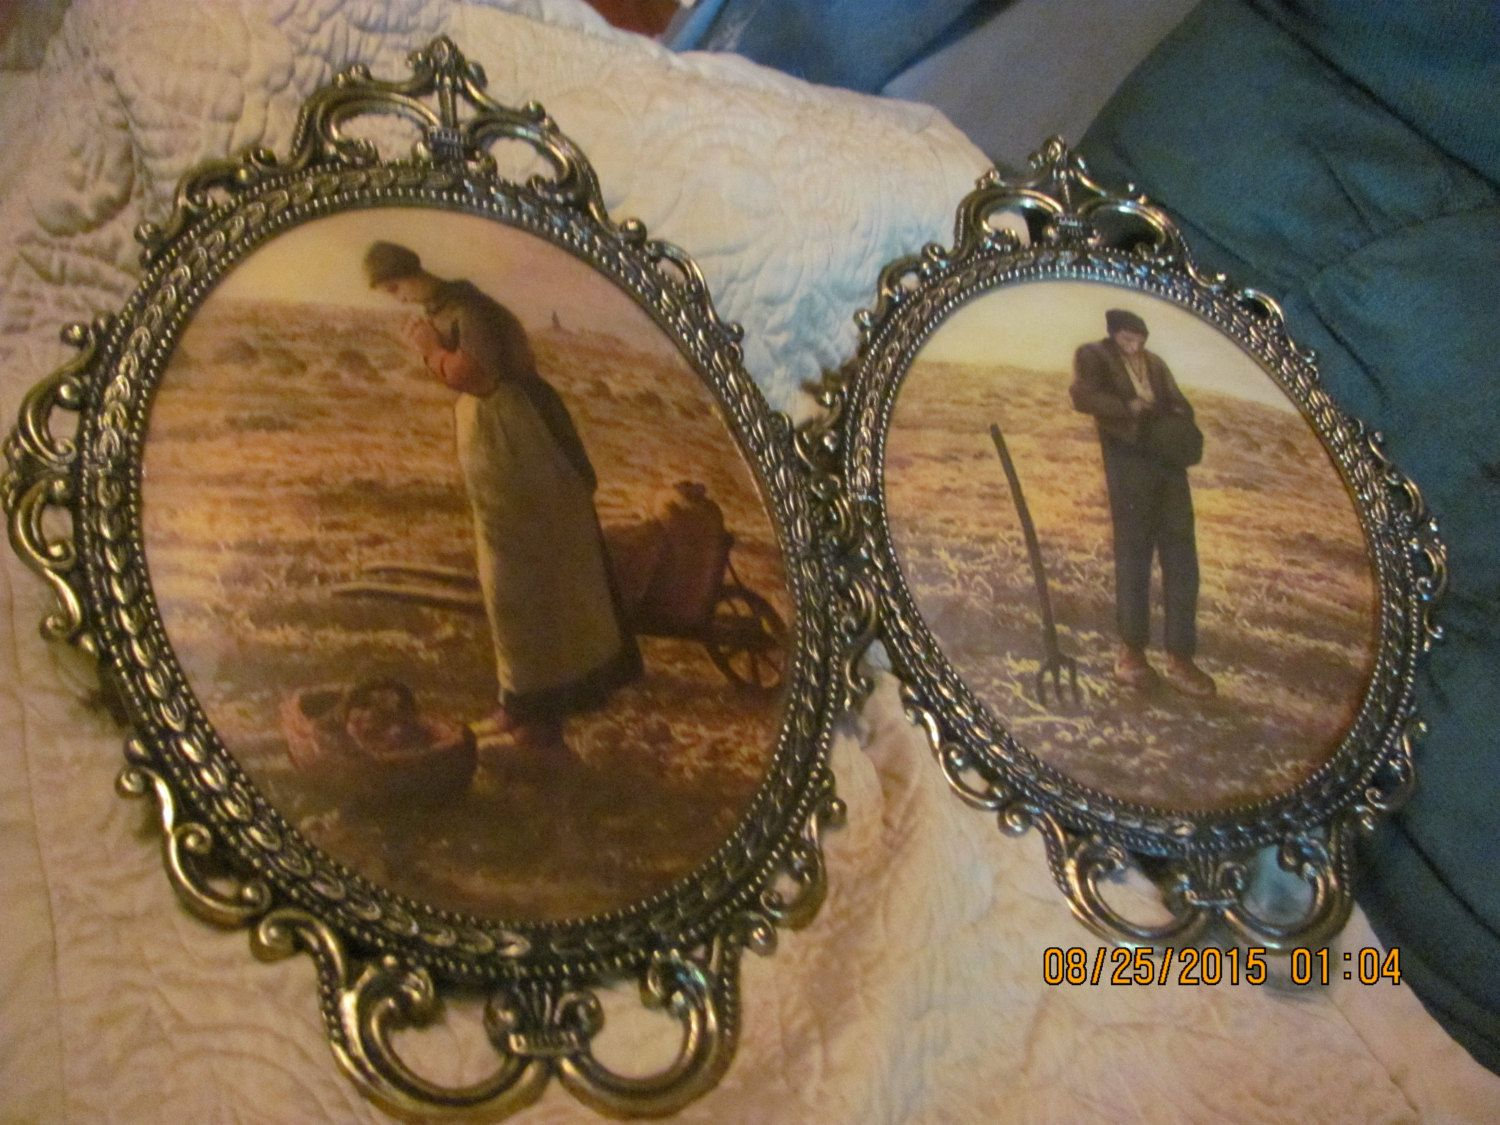 Hold for randy free shipping pair large antique brass fancy scroll free shipping pair ornate large antique brass fancy scroll the angelus man woman farmer prints convex jeuxipadfo Images